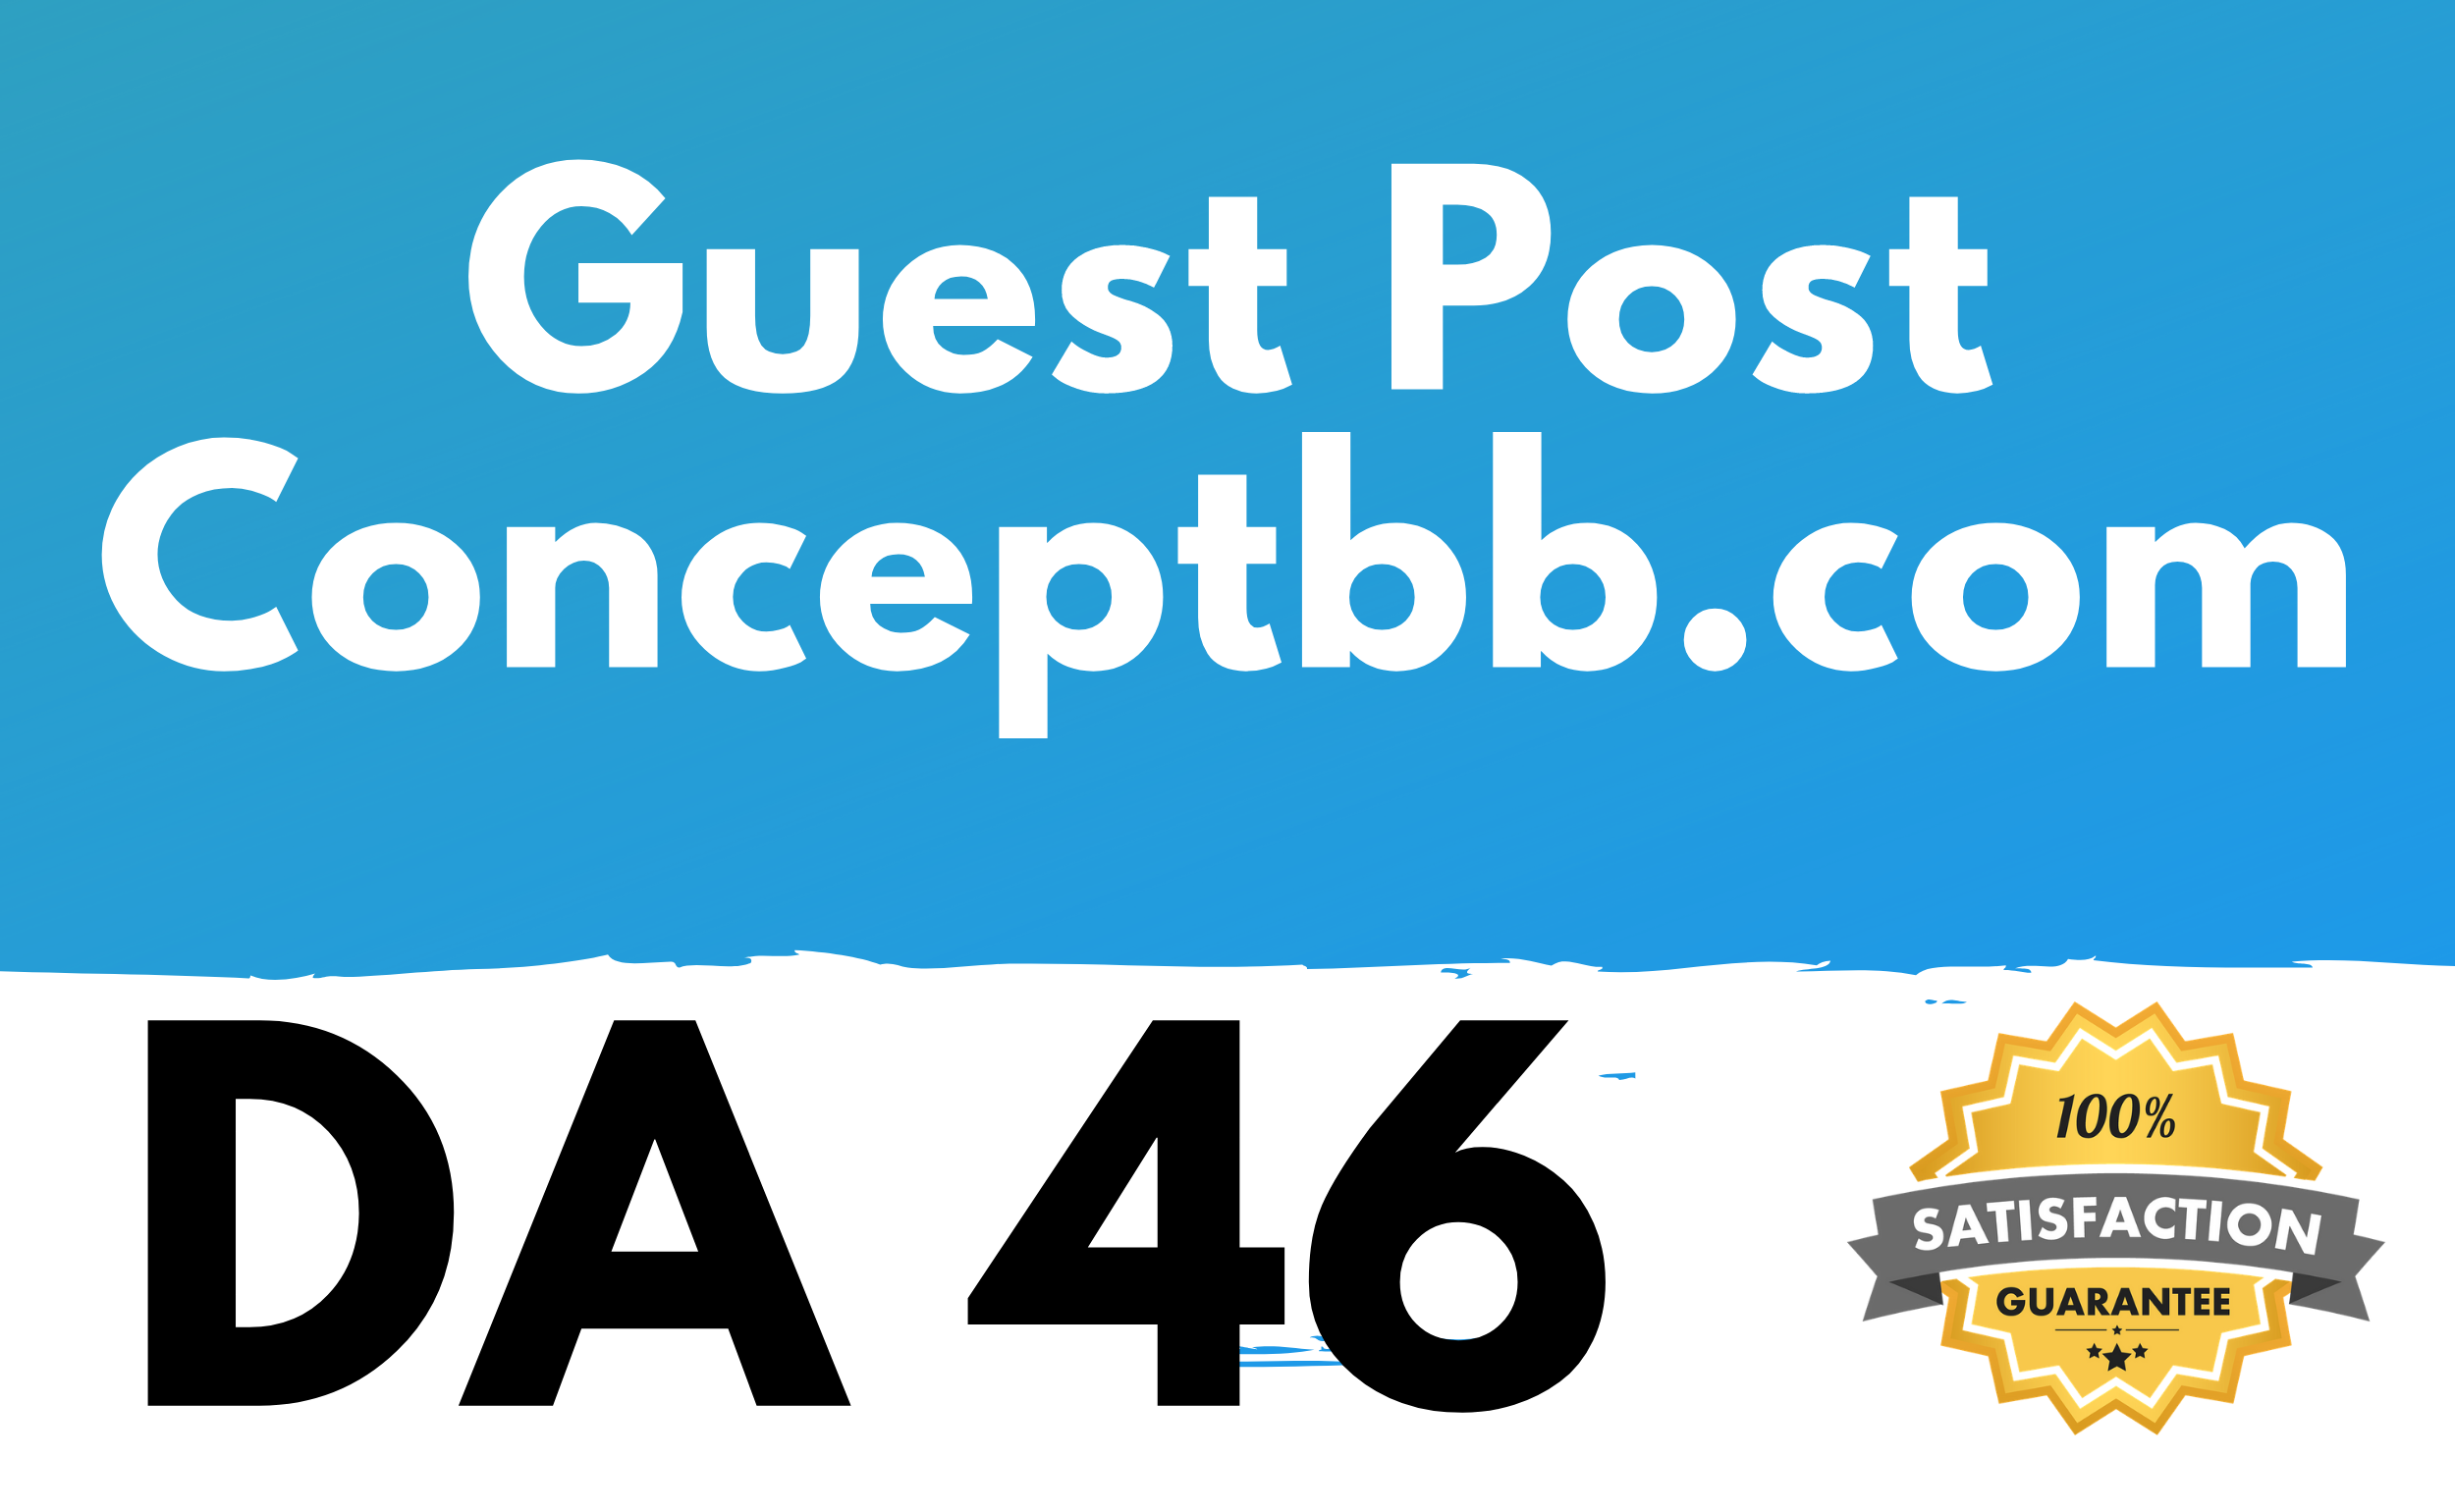 I will give you Guest Post on Conceptbb. com DA 46